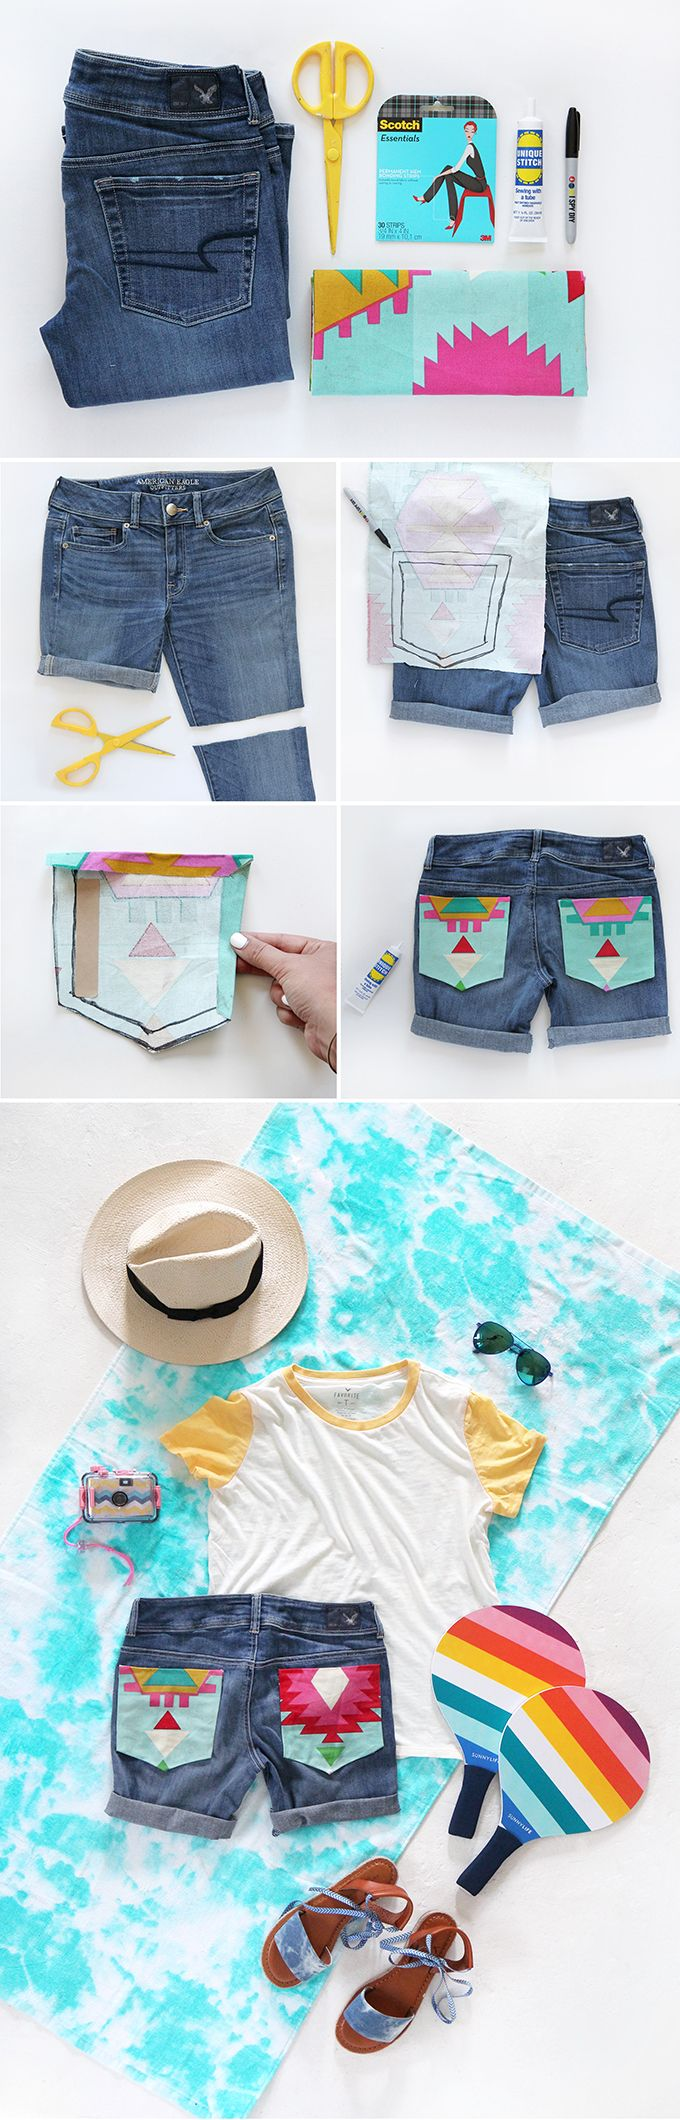 195 best no-sew diy fashion images on pinterest | clothes